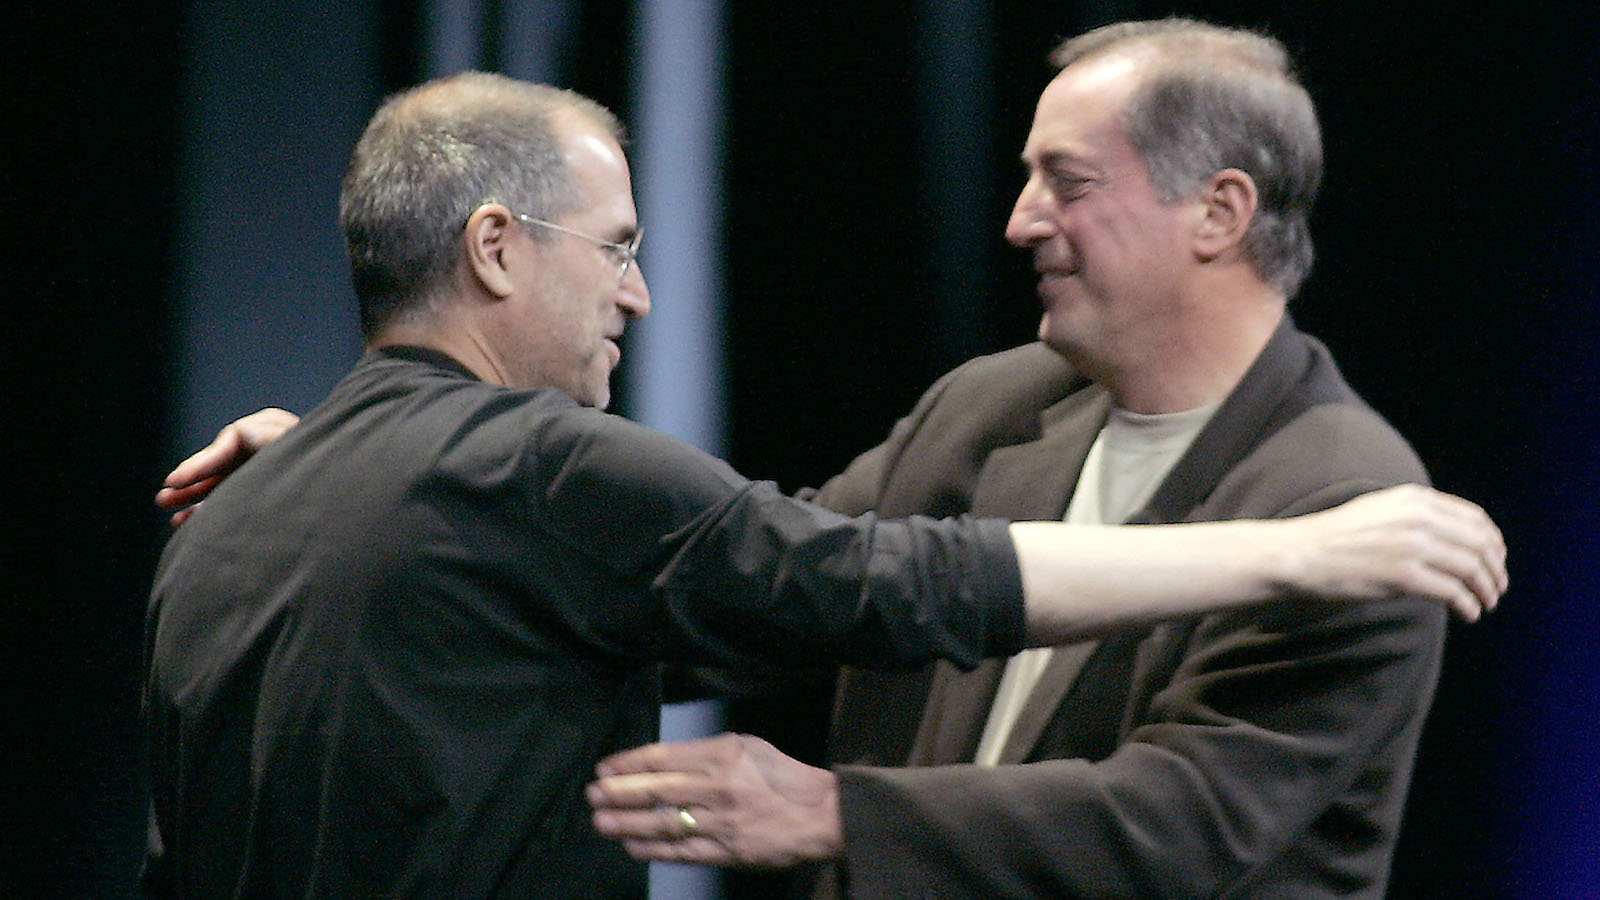 Apple CEO Steve Jobs hugs Intel President and CEO Paul Otellini at the Apple Worldwide Developer Conference in San Francisco, California.   Apple CEO Steve Jobs, (L), hugs Intel President and CEO Paul Otellini at the Apple Worldwide Developer Conference in San Francisco, California June 6, 2005. Apple Computer Inc. on Monday said it will shift to using Intel Corp. microprocessors in its Macintosh computers, severing its long relationship with International Business Machines Corp. which had supplied the chips to Apple. REUTERS/Tony Avelar - RTRDKC1